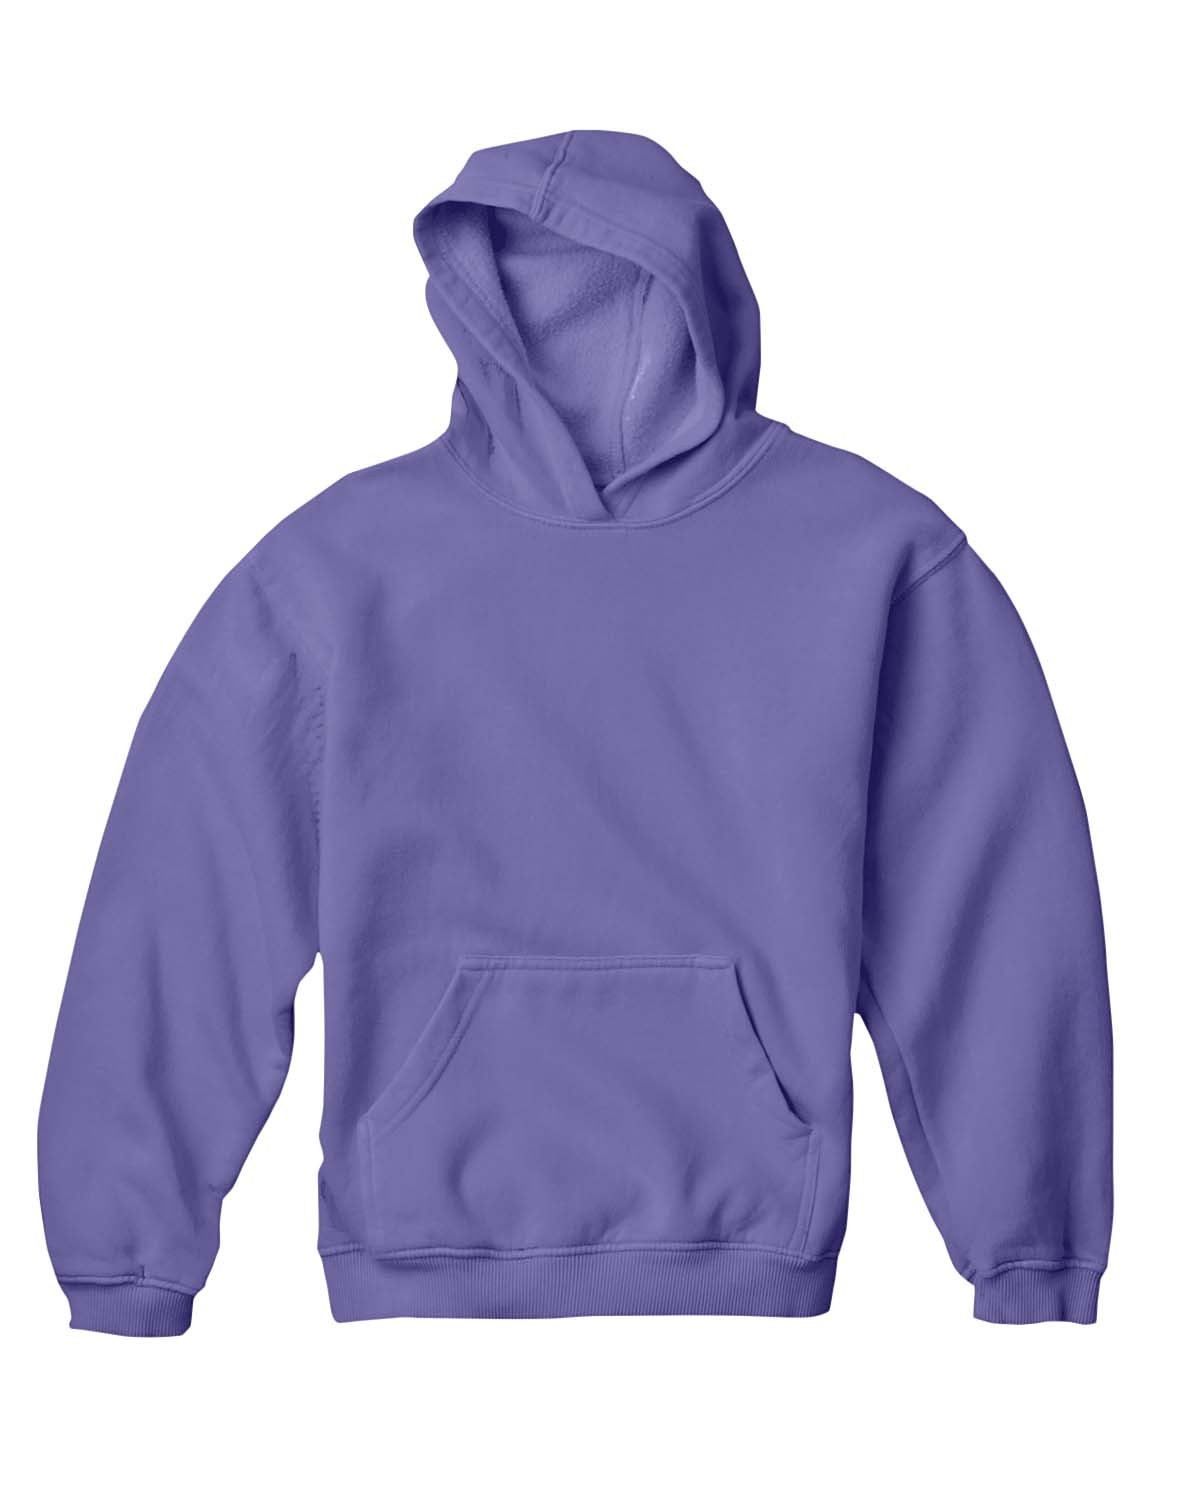 C8755 Comfort Colors Drop Ship VIOLET